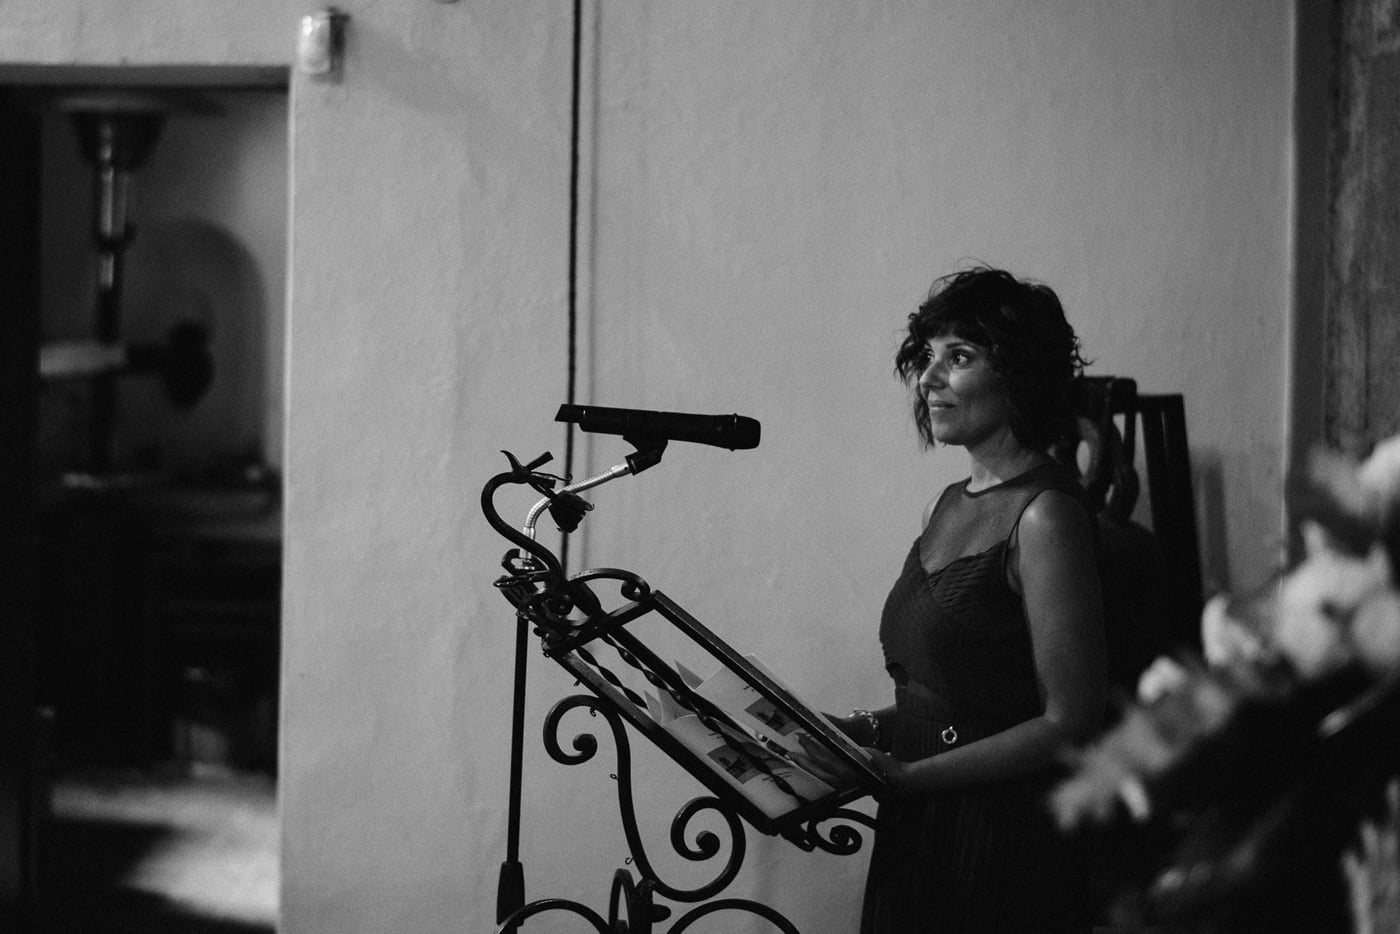 Wedding at Borgo San Luigi, Andrea & Francesca | Wedding at Borgo San Luigi by Federico Pannacci, Federico Pannacci, Federico Pannacci